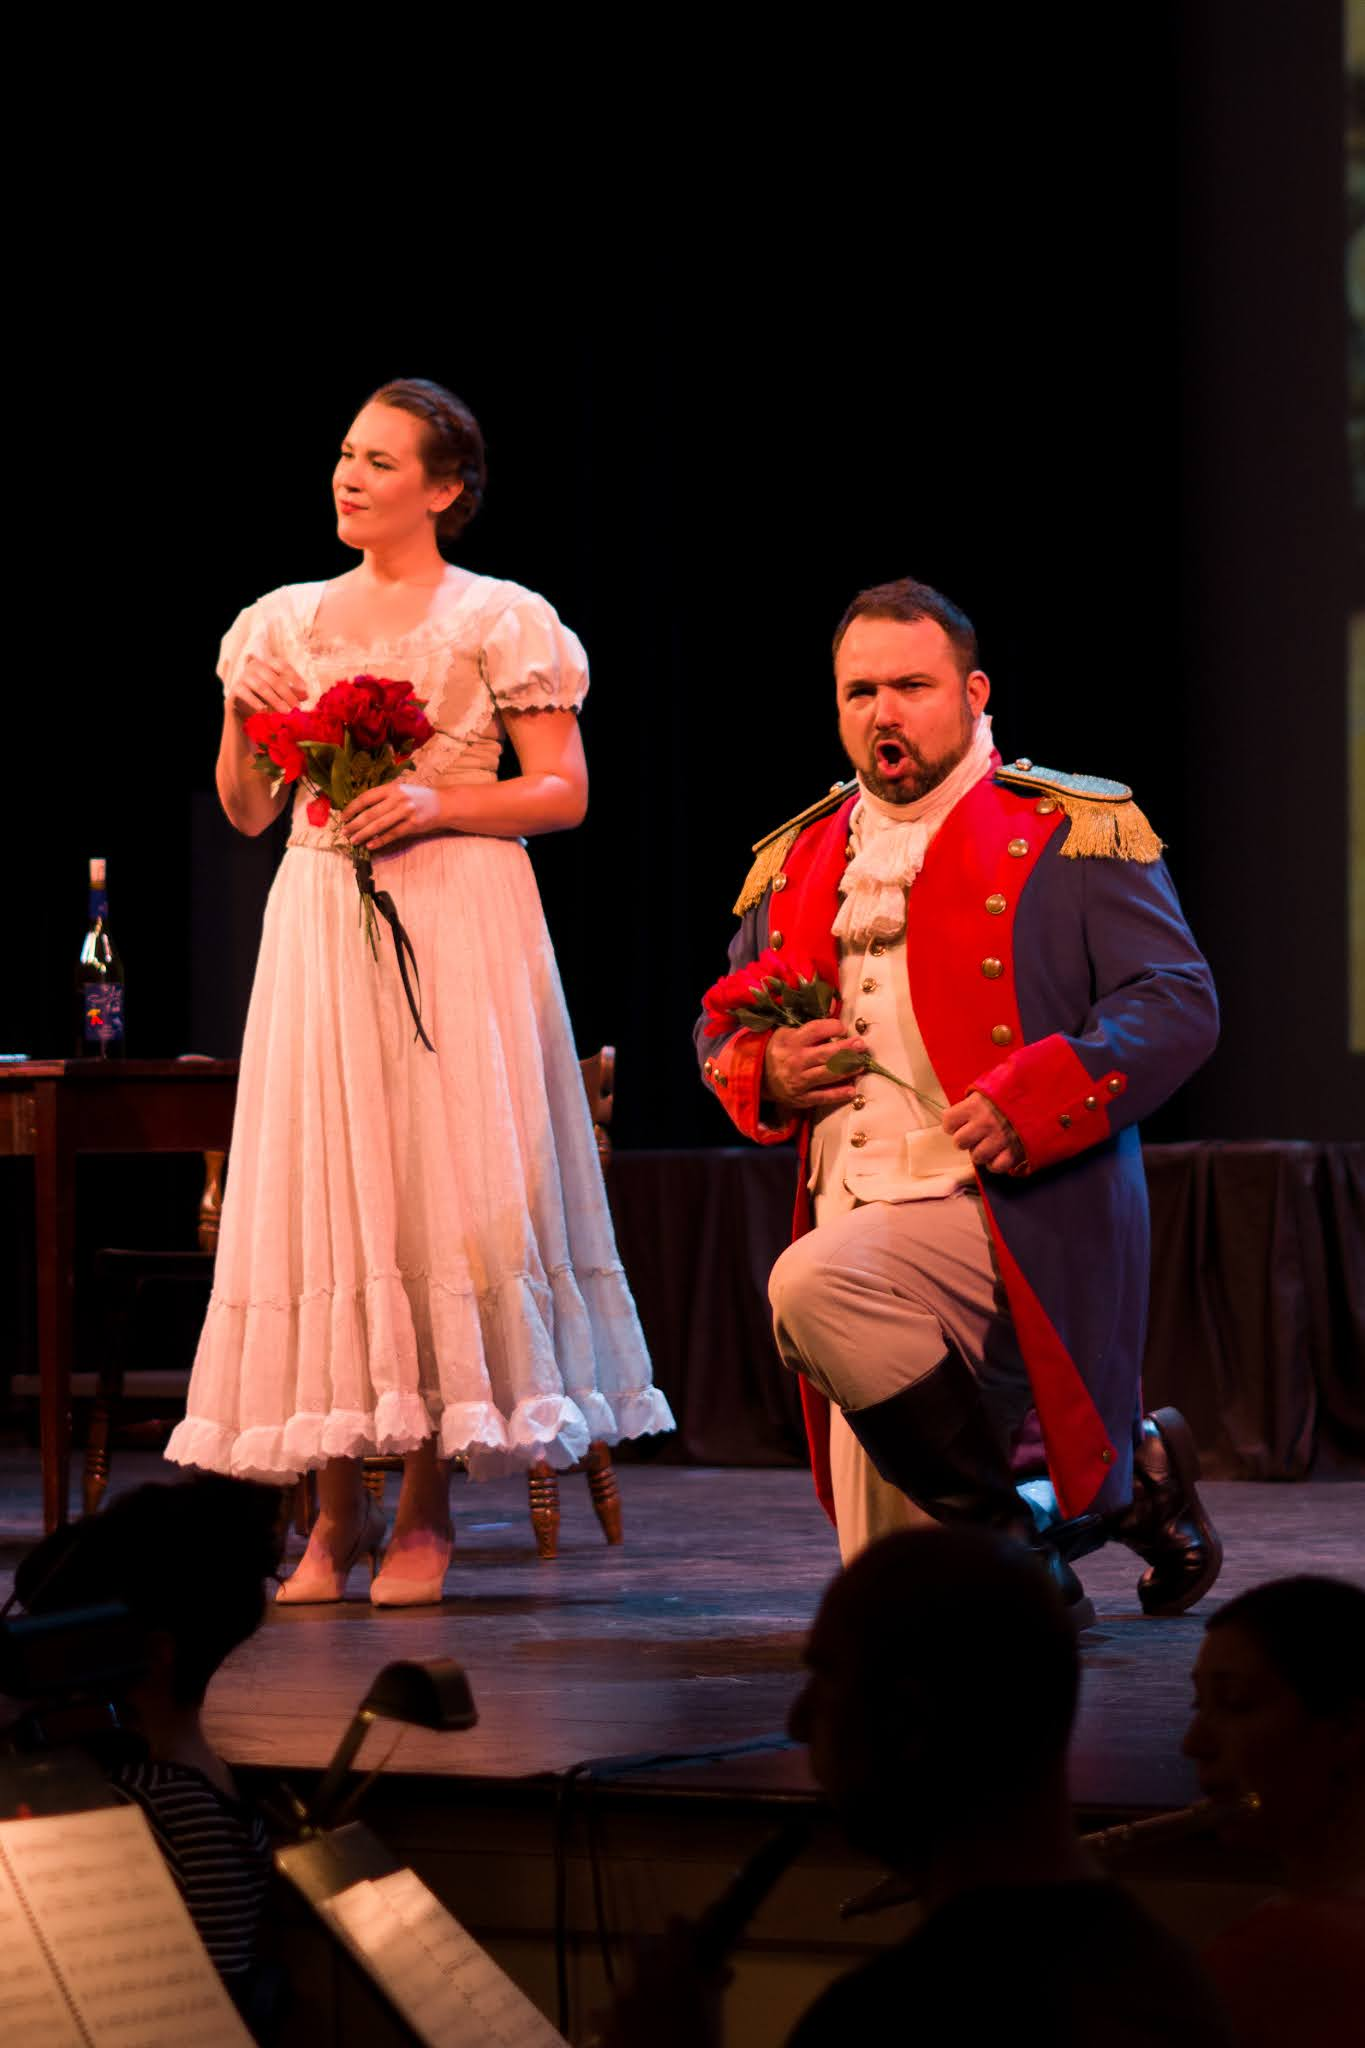 IN REVIEW: soprano CHRISTINE TAYLOR PRICE as Adina (left) and bass-baritone LEO RADOSAVLJEVIC as Belcore (right) in the Emerald Cast of Opera in Williamsburg's September 2021 production of Gaetano Donizetti's L'ELISIR D'AMORE [Photograph © by Diego Valdez; used with permission]